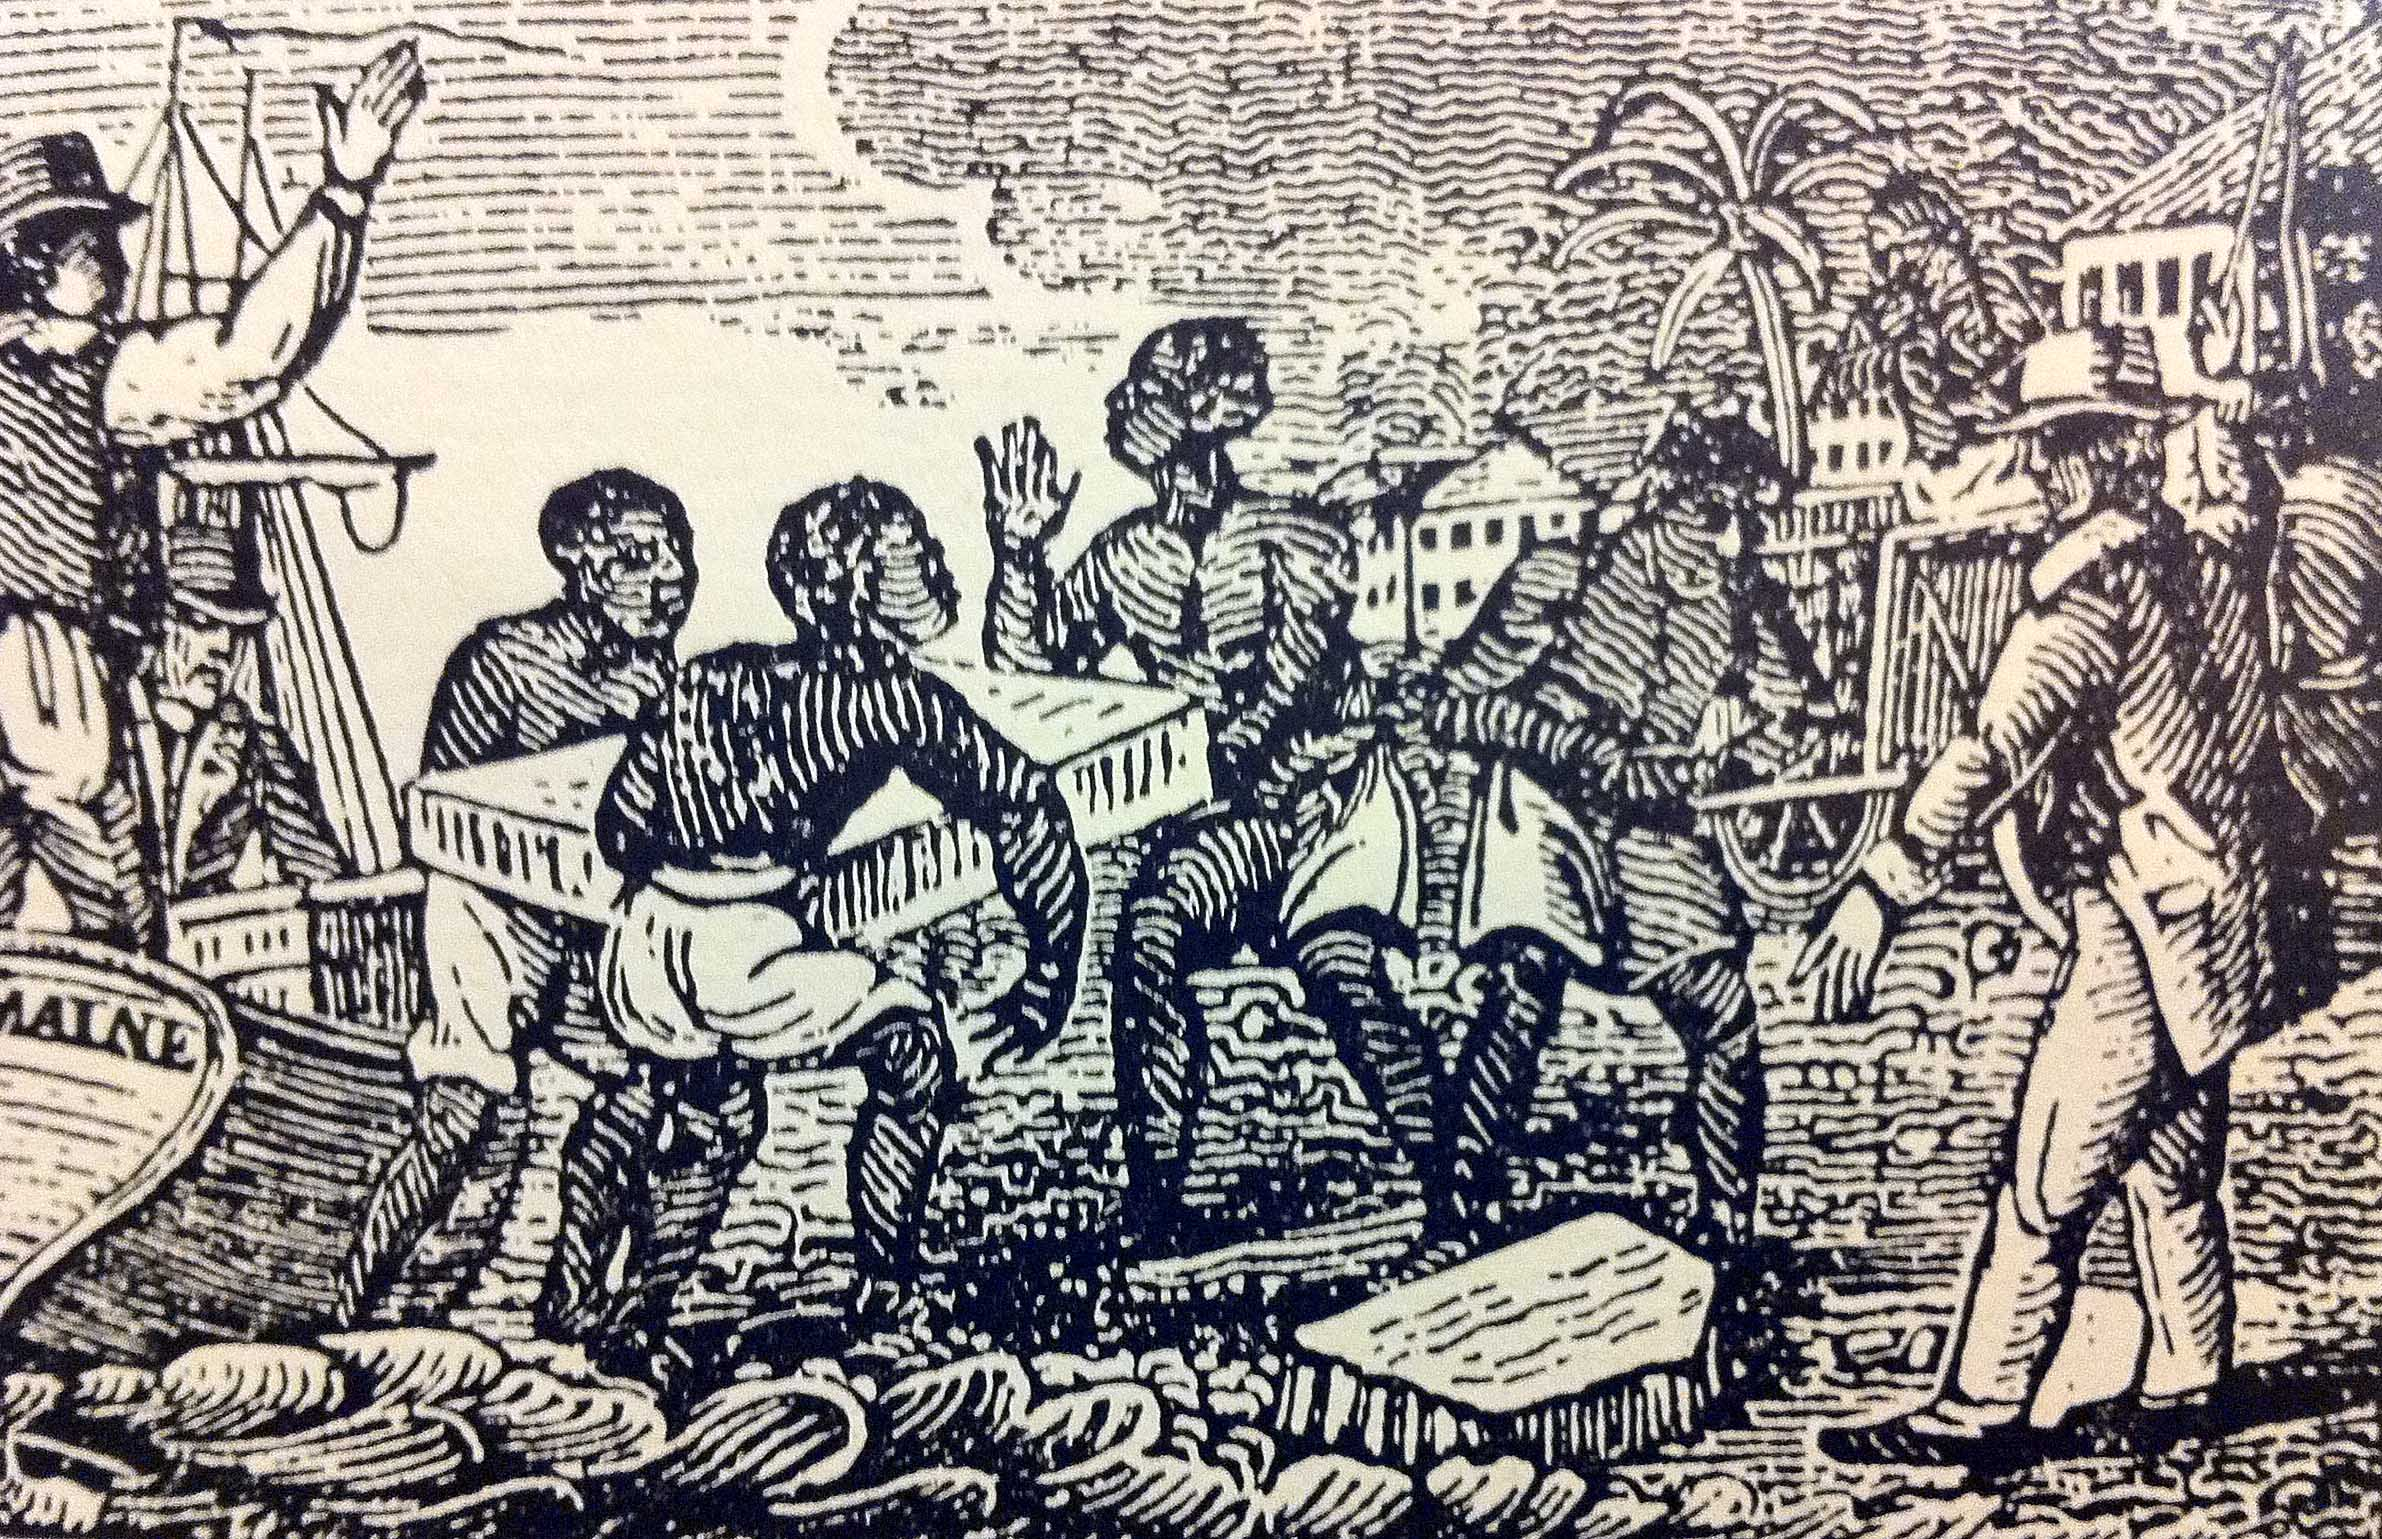 slavery american institution (our) peculiar institution was a euphemism for slavery and the social, economic and political ramifications that it bore and maintained the term became popularized.